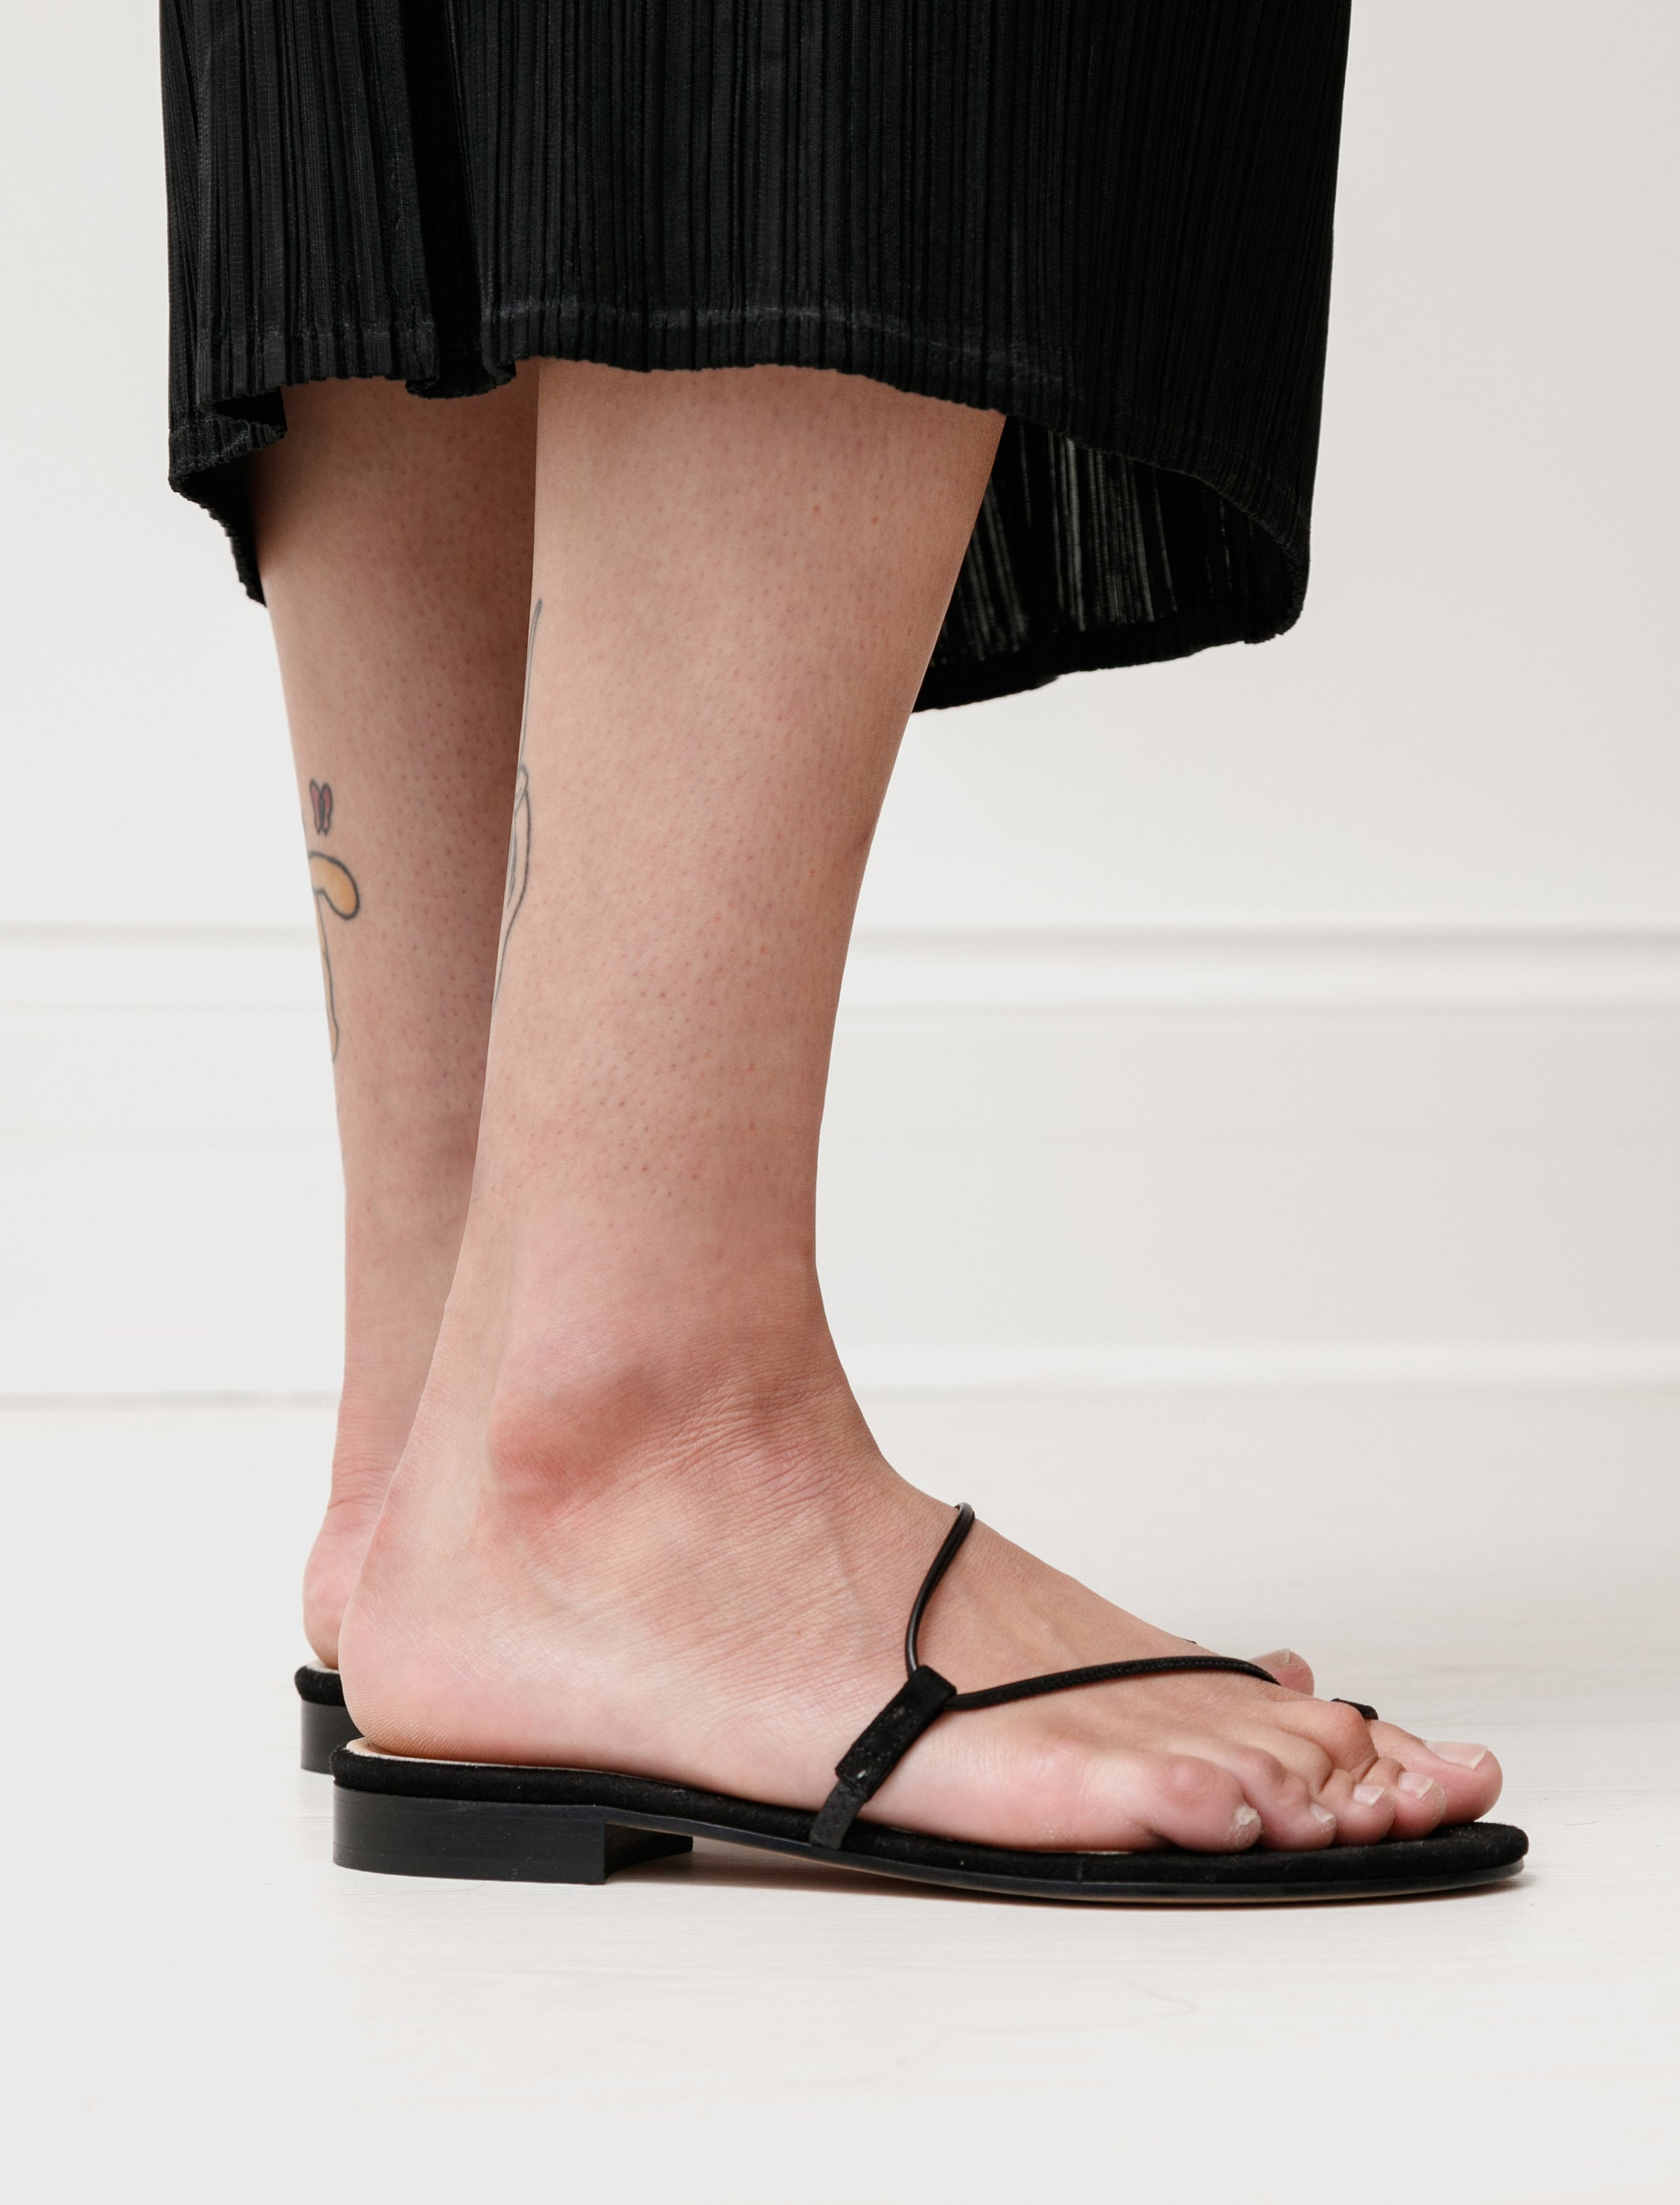 Emme Parsons Susan Slide in Black Suede